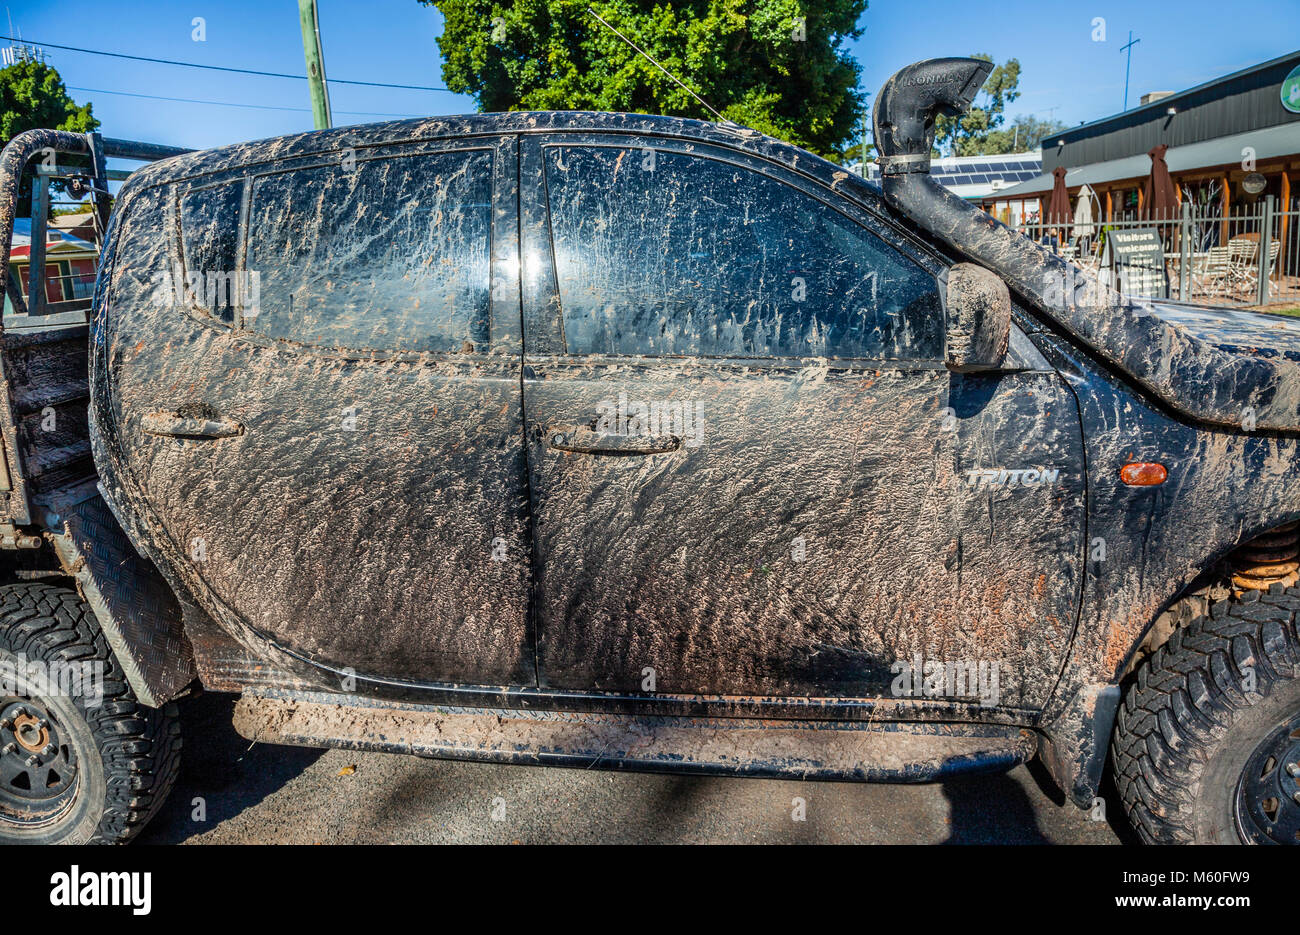 Australia, North-West New South Wales, Bourke, mud vovered 4WD vehicle after some rough outback travel - Stock Image